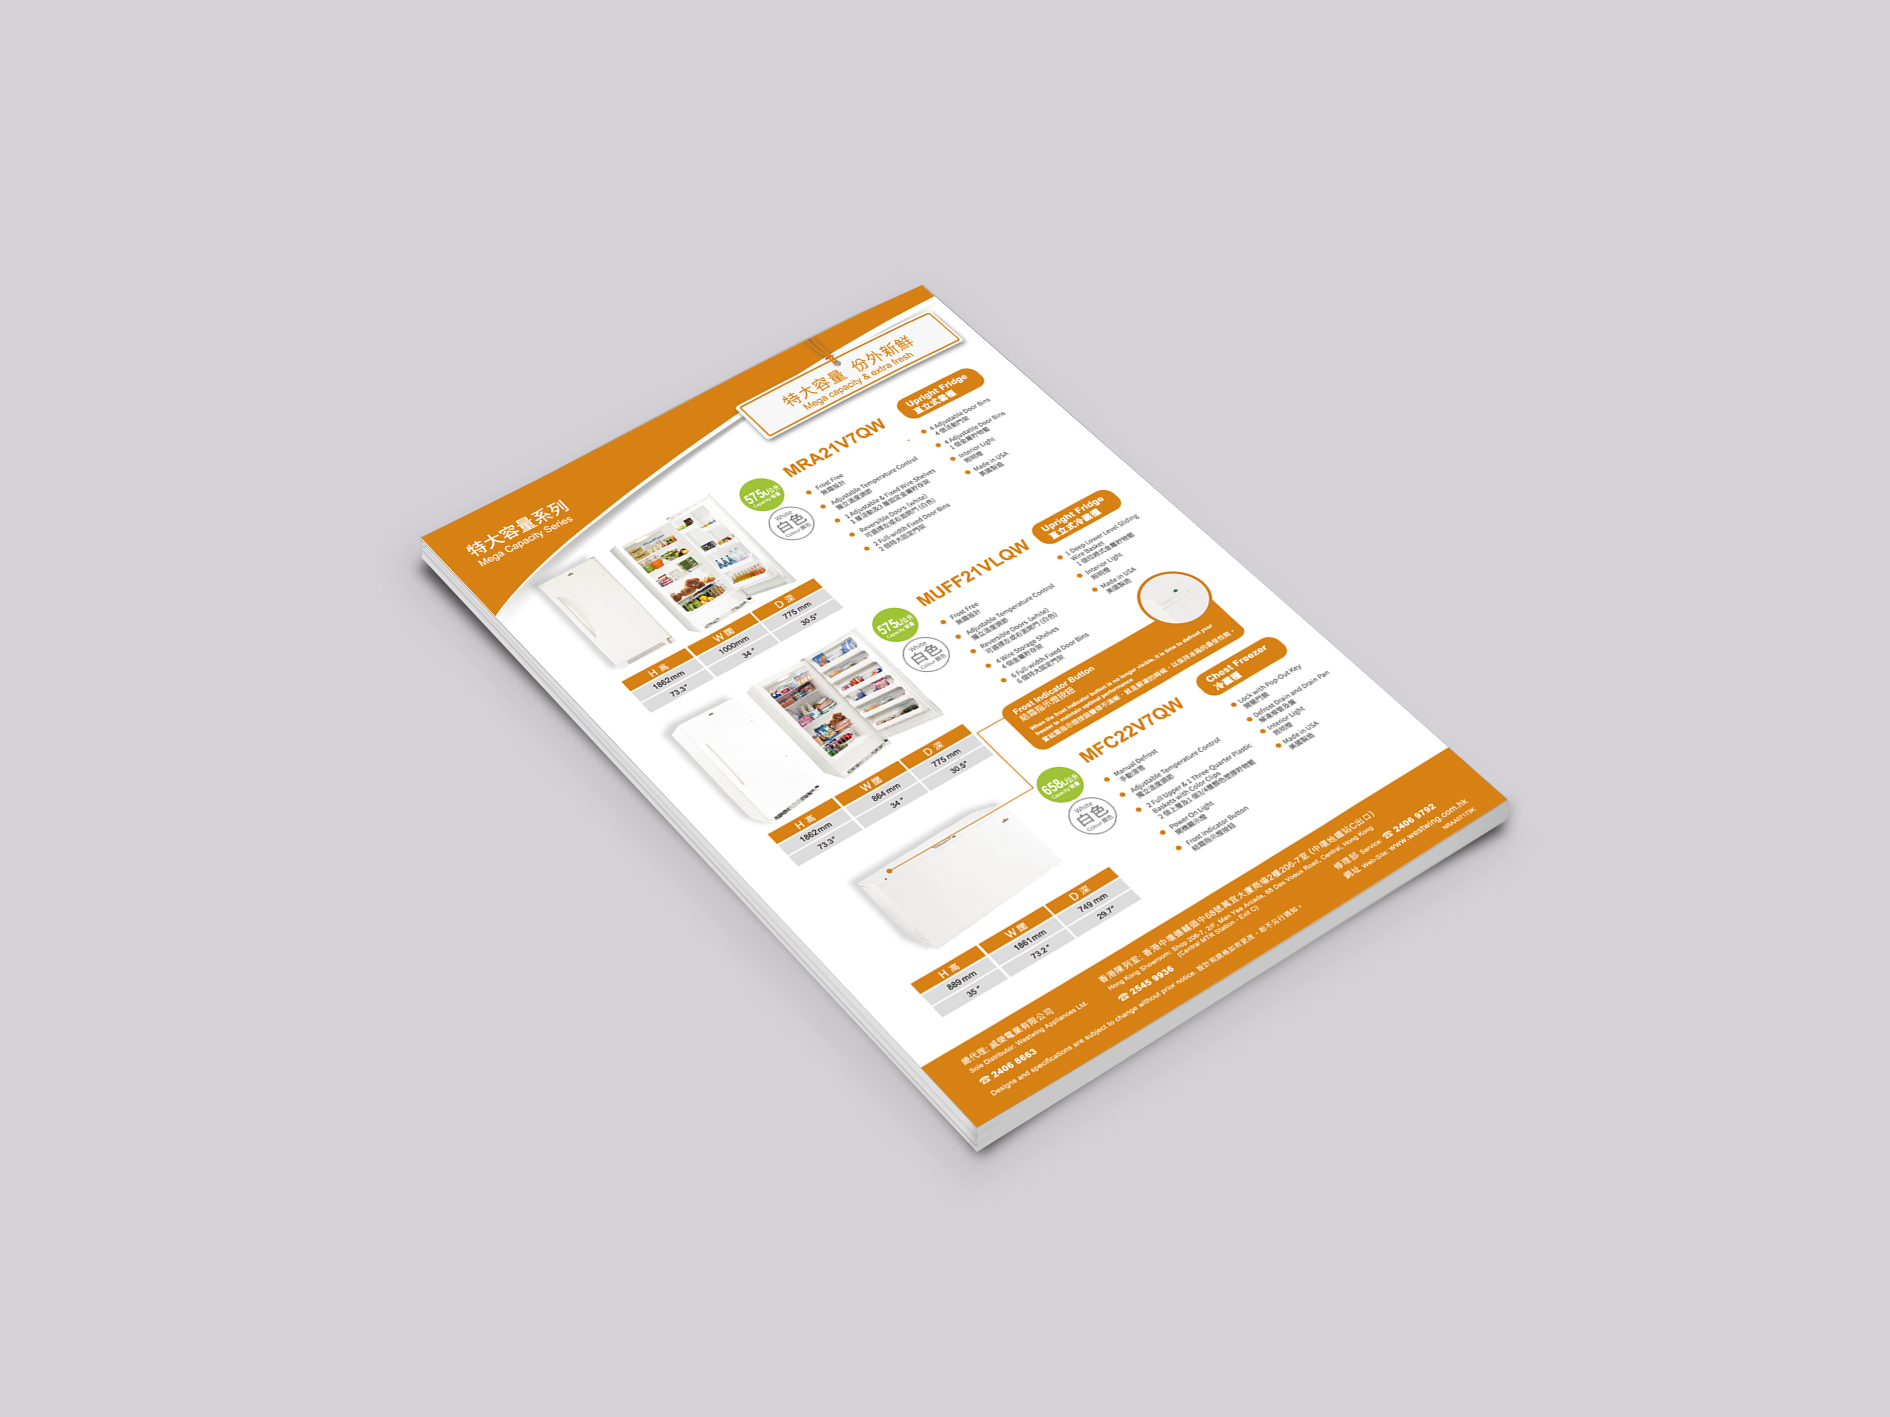 Design-Advertising-Graphic-branding-online-marketing-illustration-poster-Electrical product03